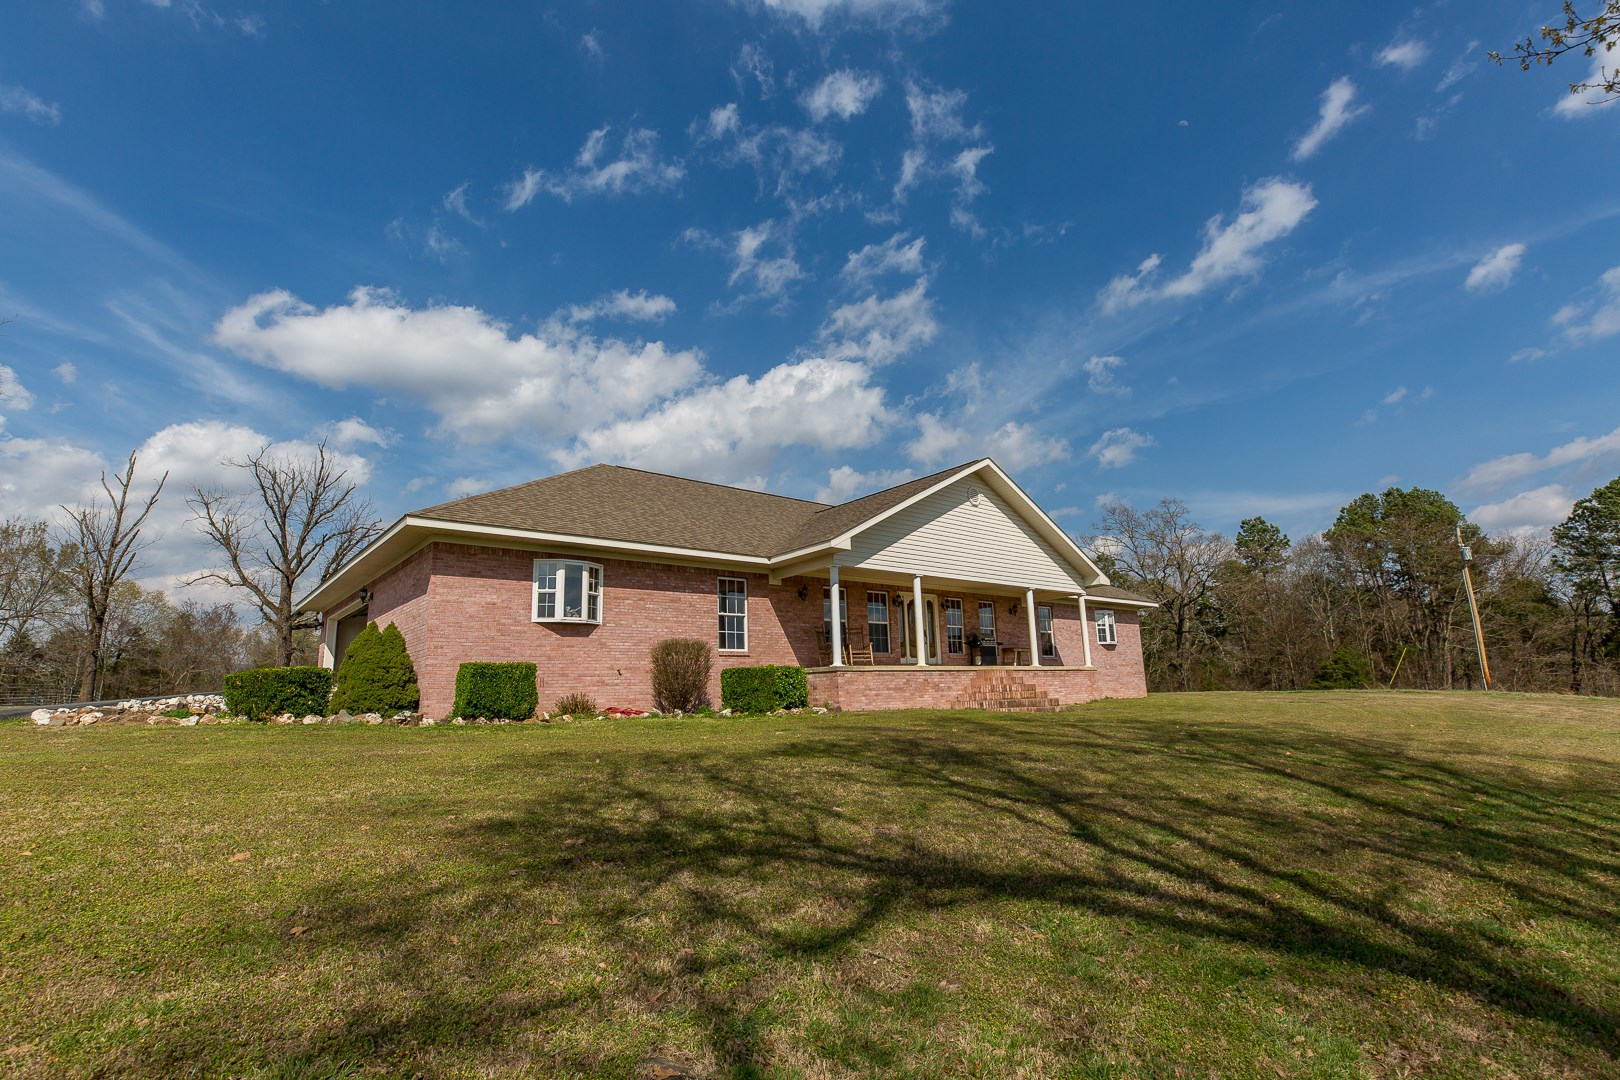 Brick Home with land for sale in Arkansas